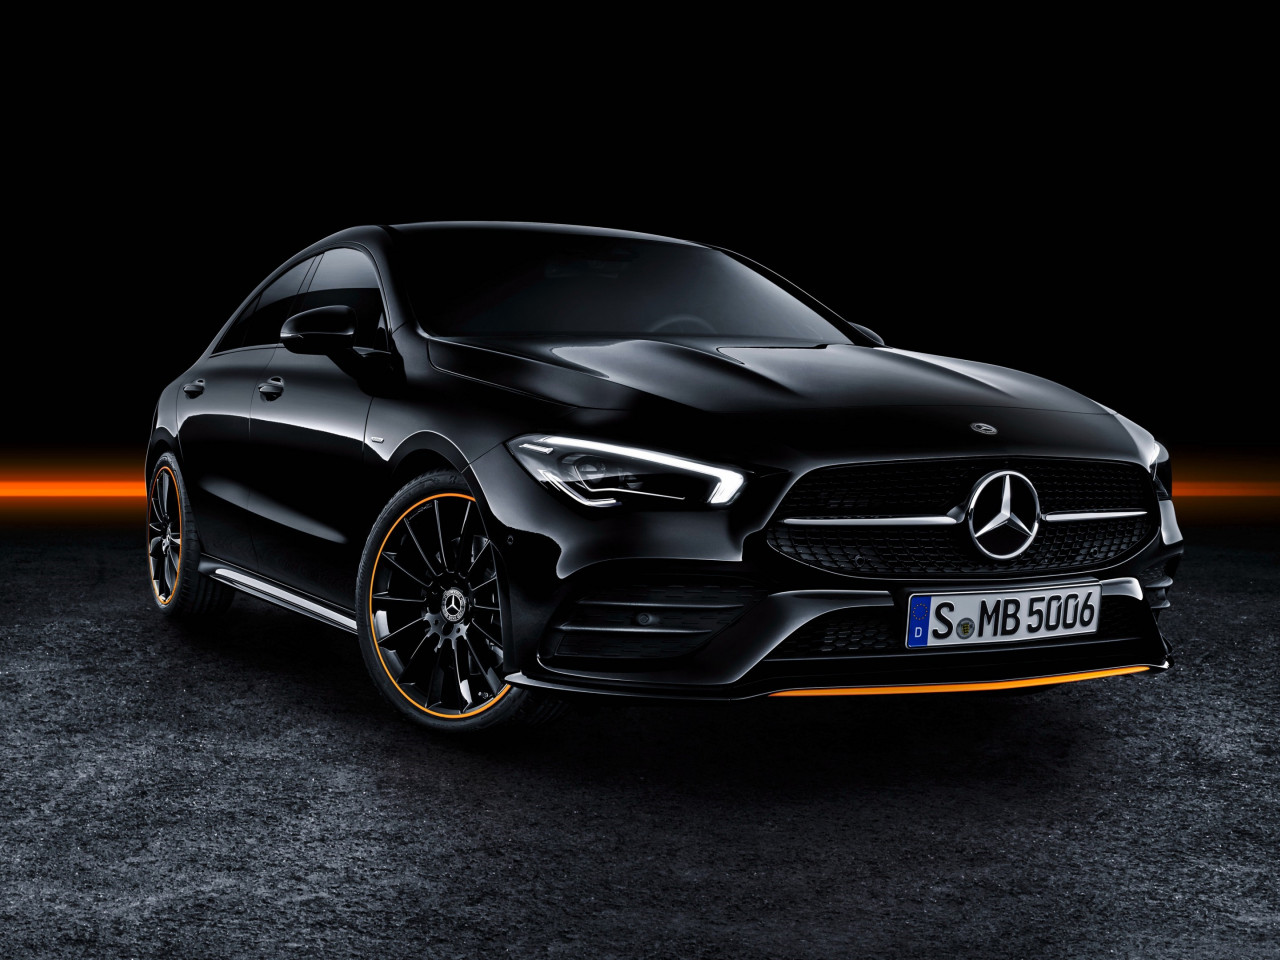 Mercedes Benz CLA 250 AMG wallpaper 1280x960